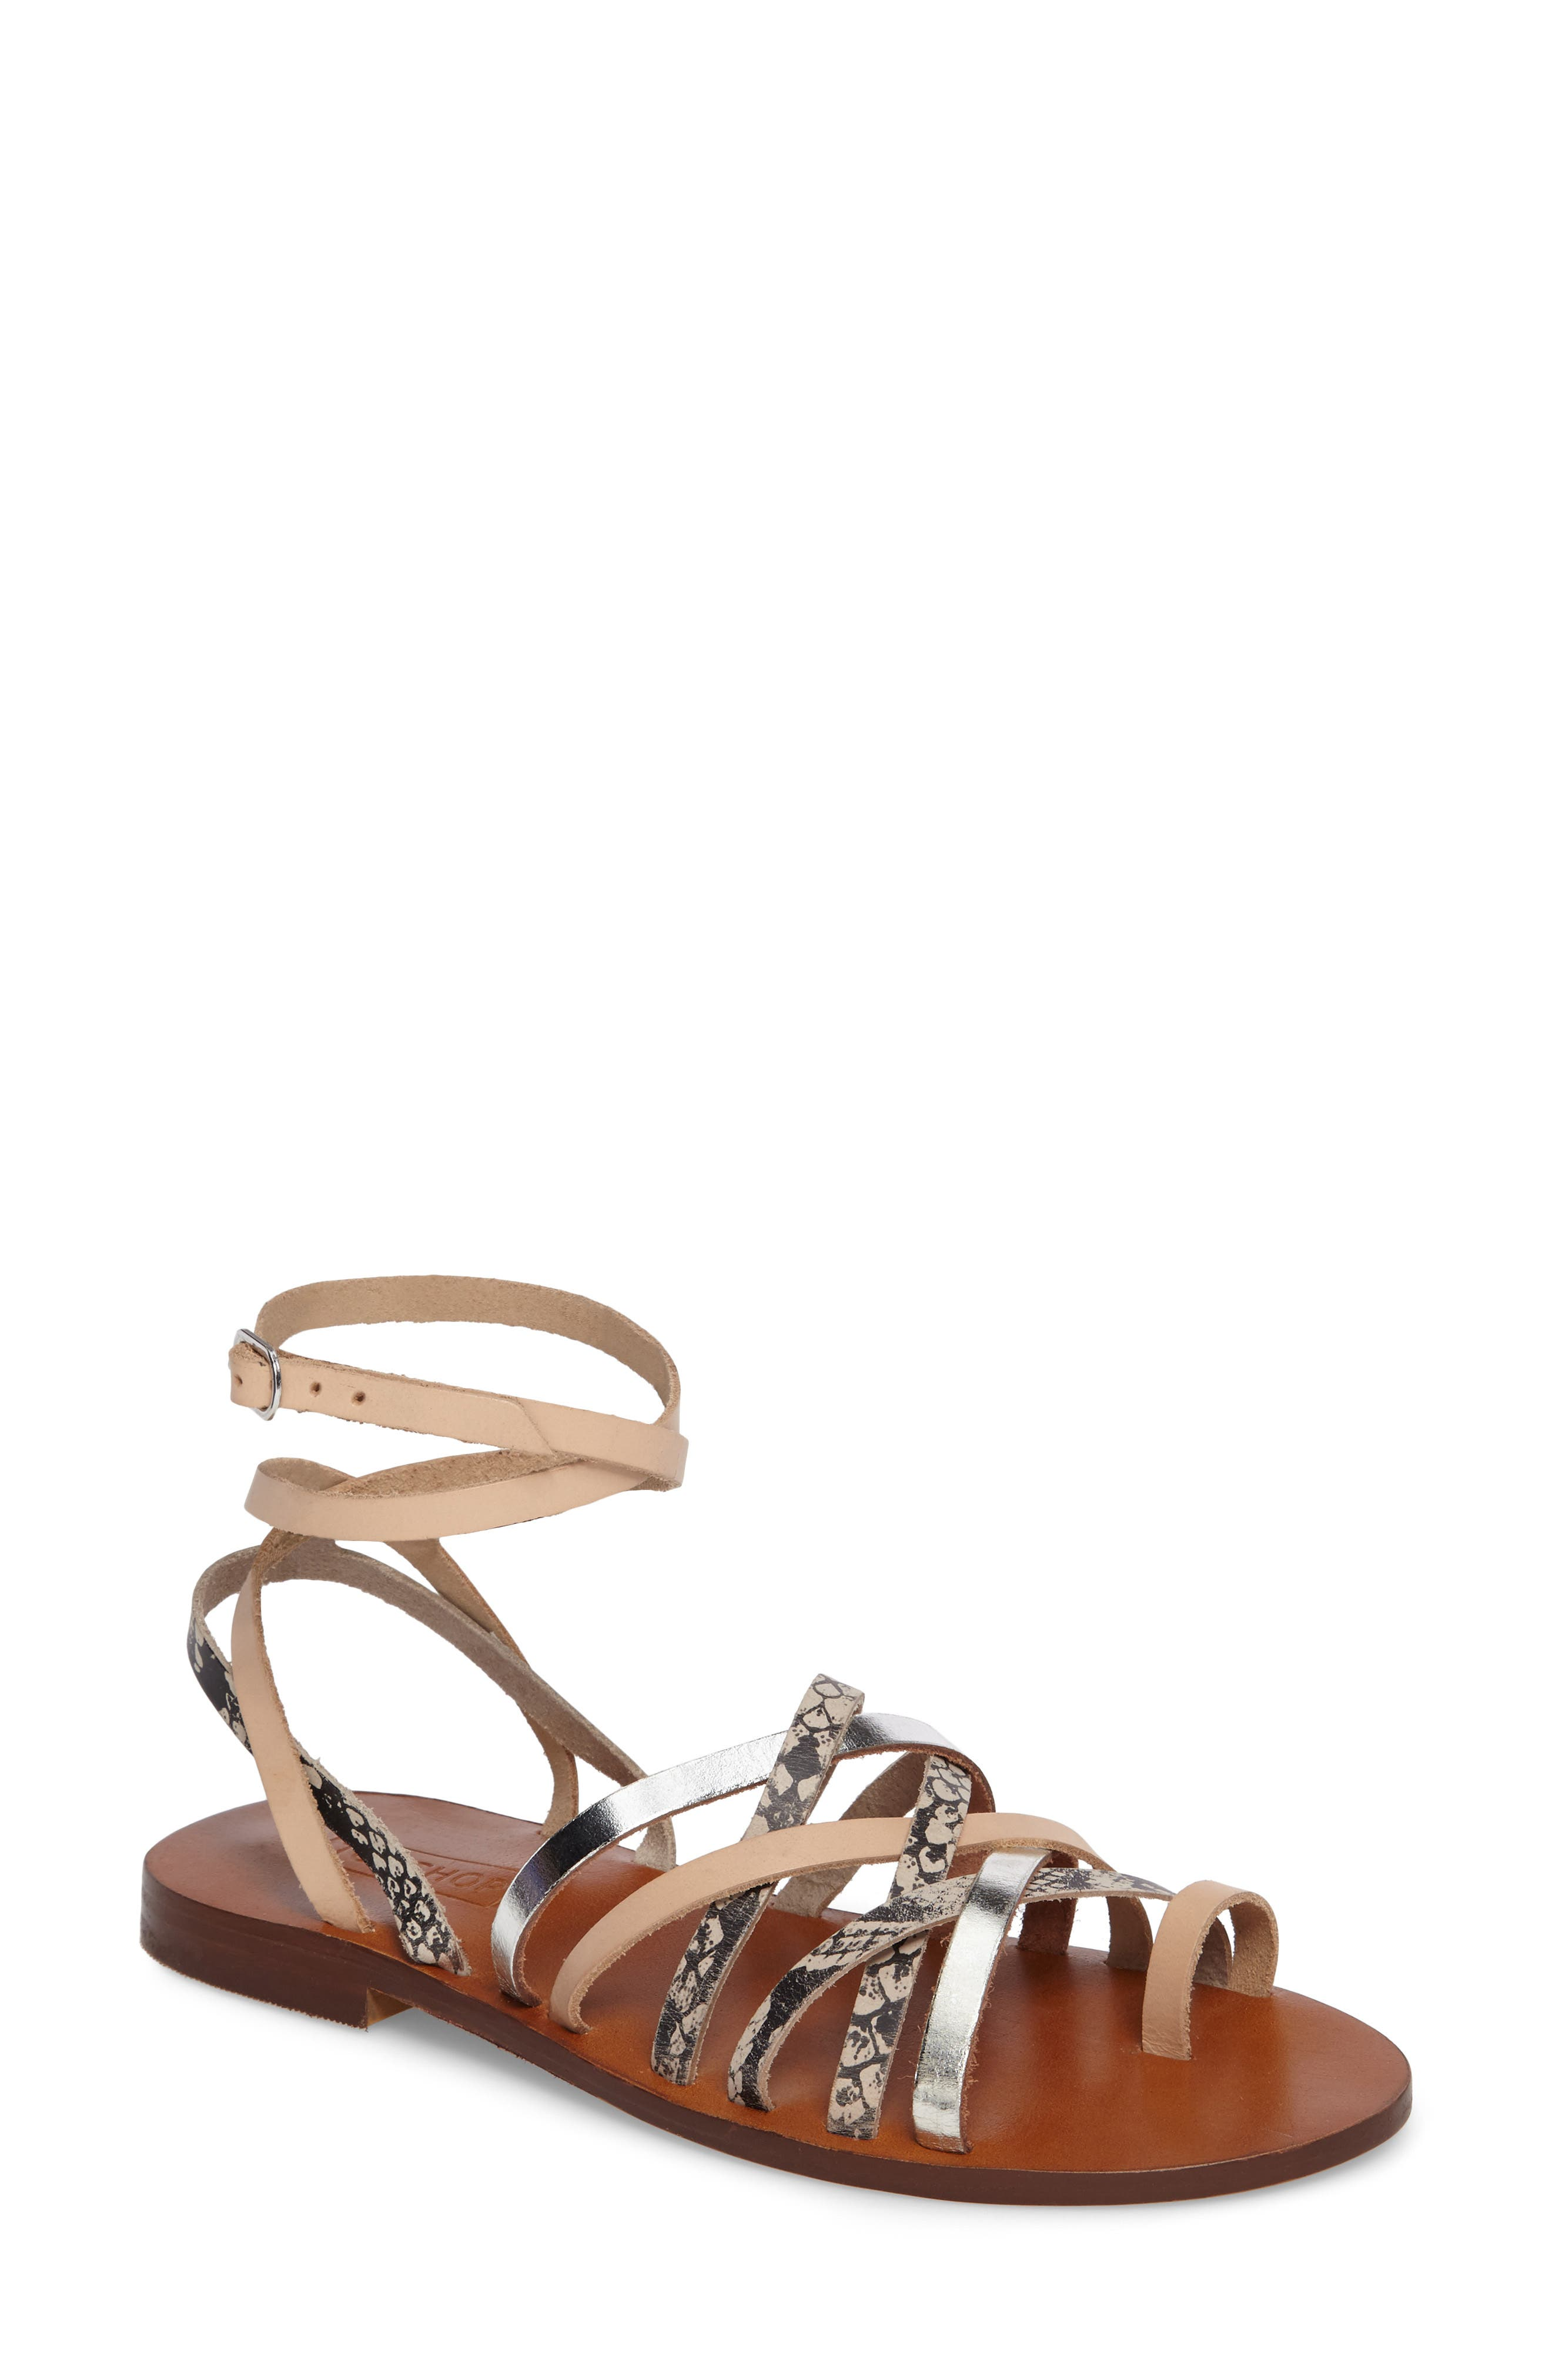 Fizzy Strappy Sandal,                         Main,                         color, 001